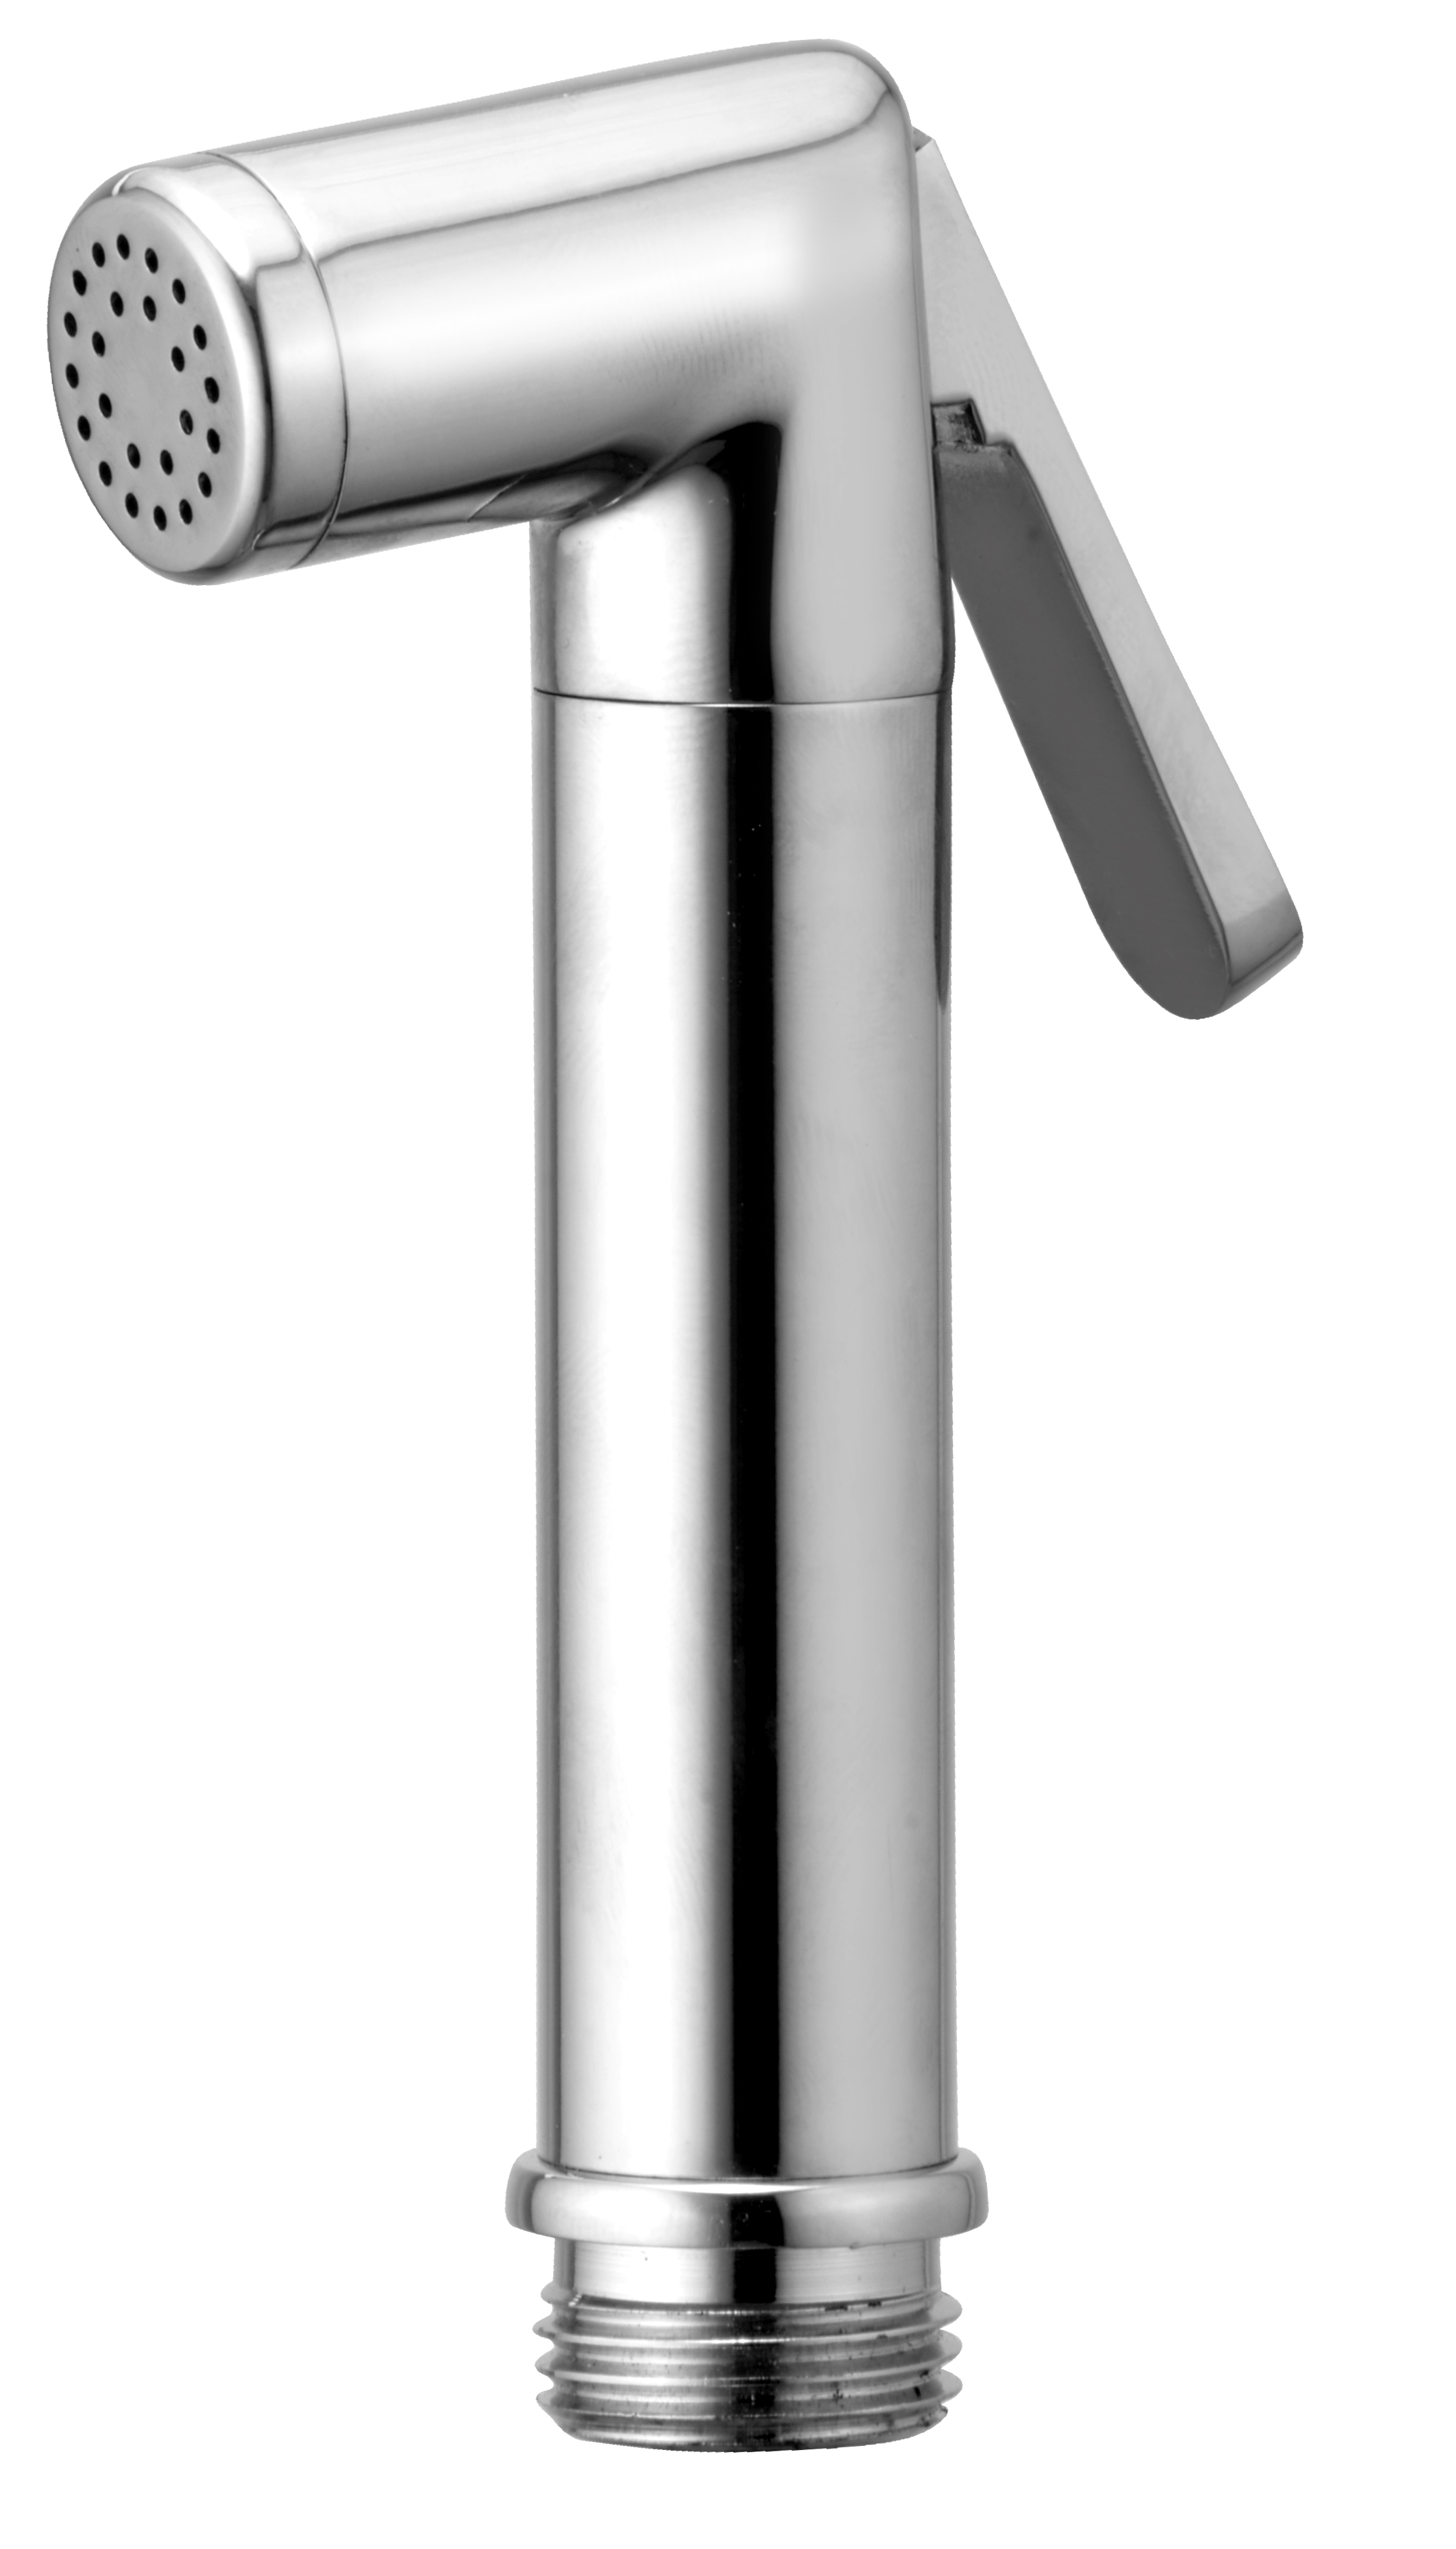 HEALTH FAUCETS BRASS